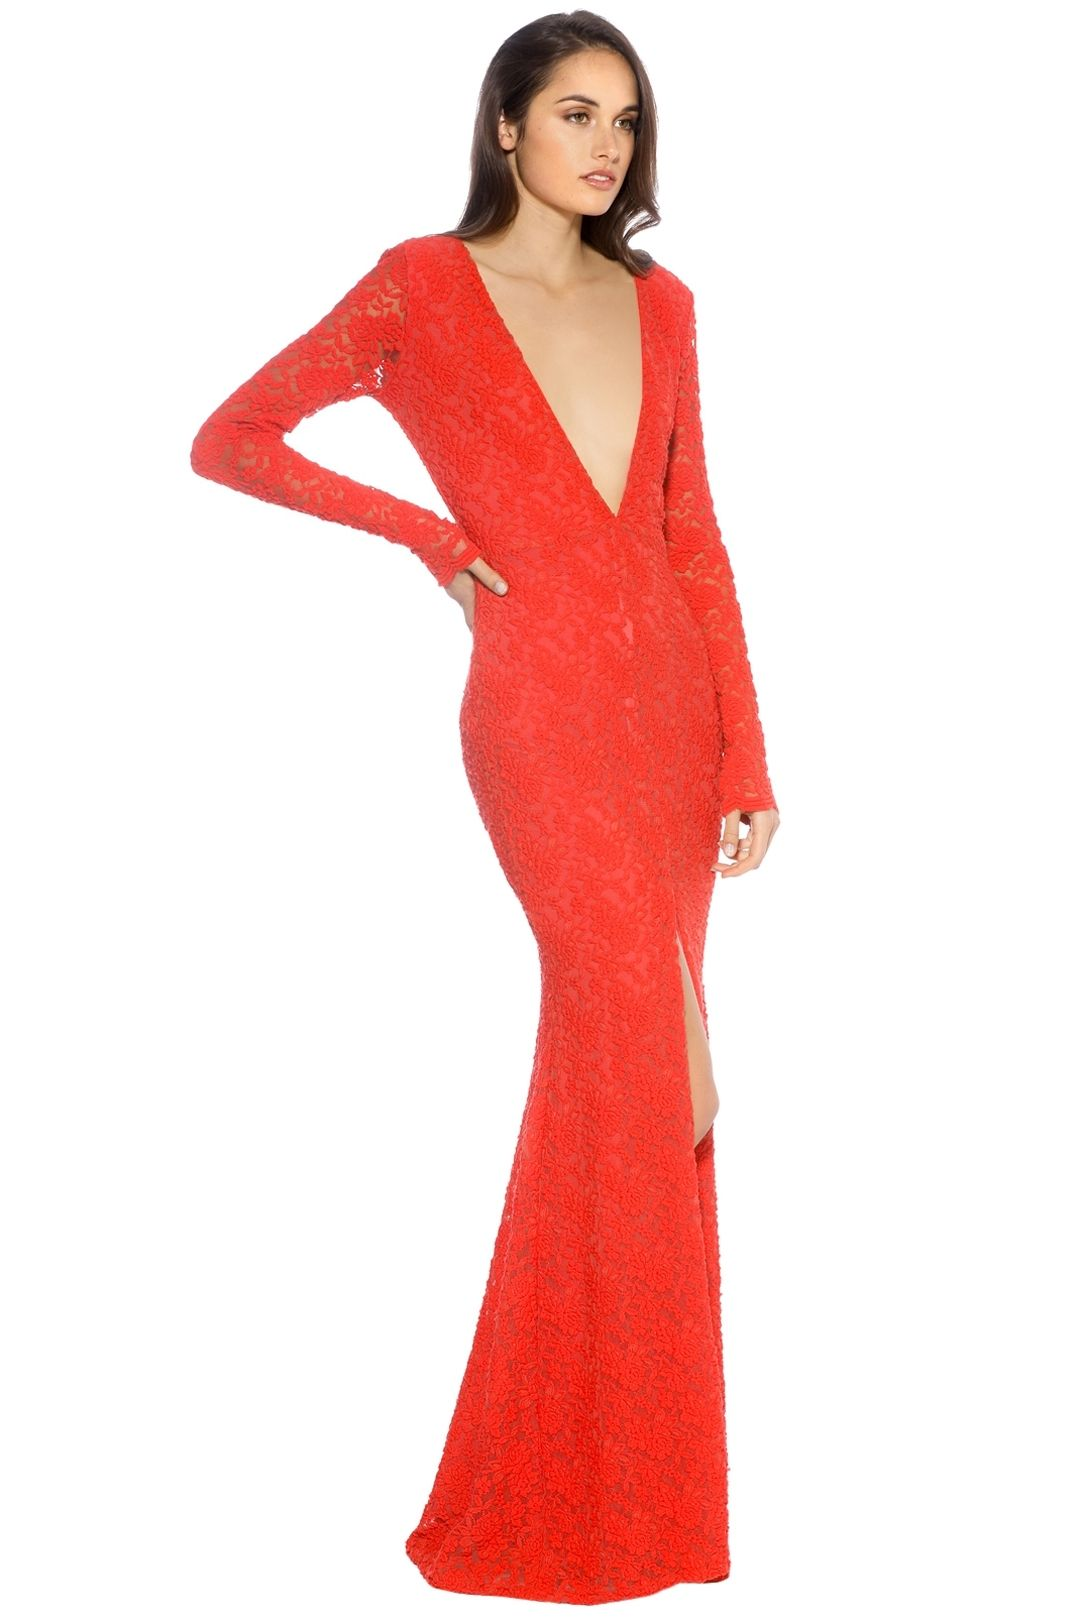 Ae'lkemi - V Plunge Red Long Sleeve Gown - Red - Side